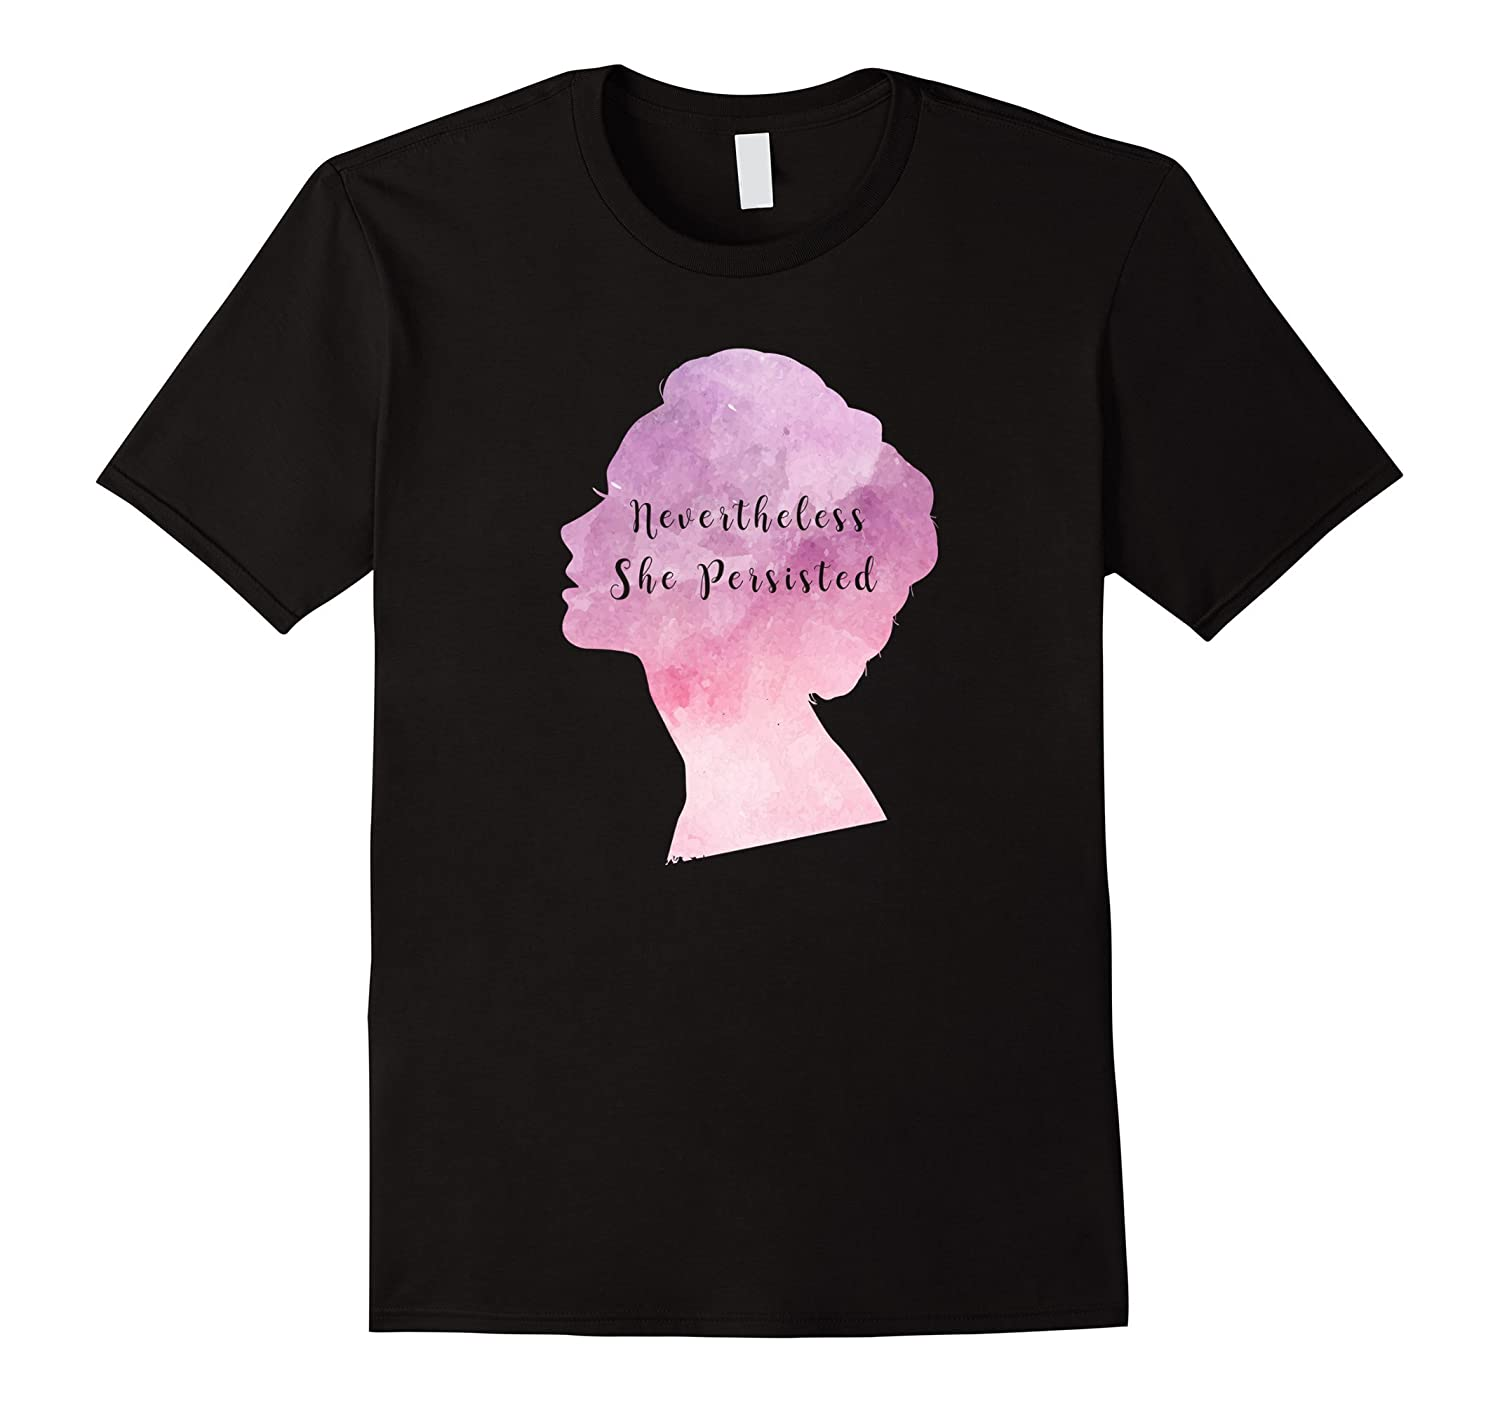 Nevertheless She Persisted Feminist Activist Politial TShirt-Art